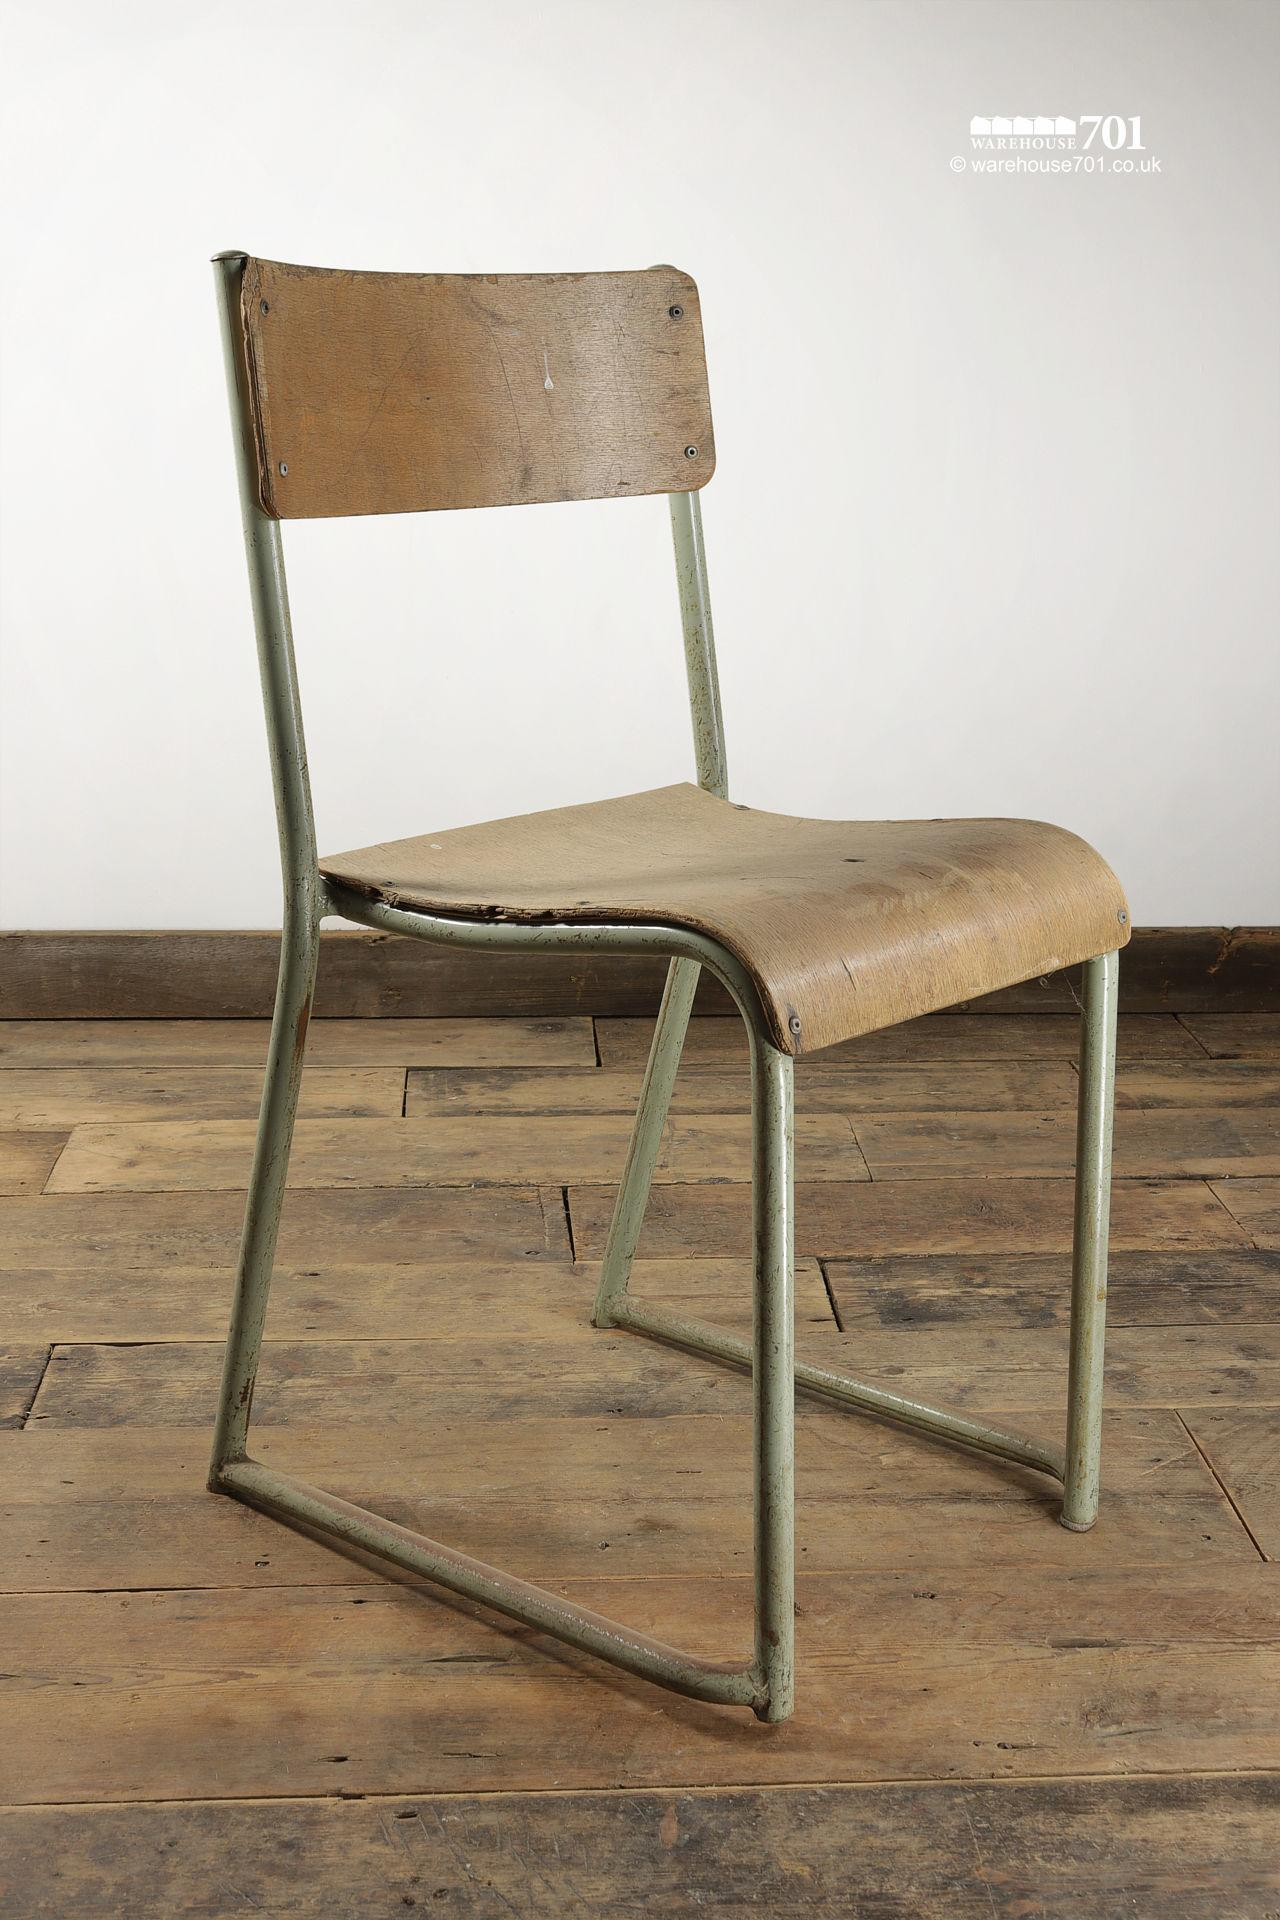 Vintage Sage Green Tubular Steel and Ply Stacking Chairs #2